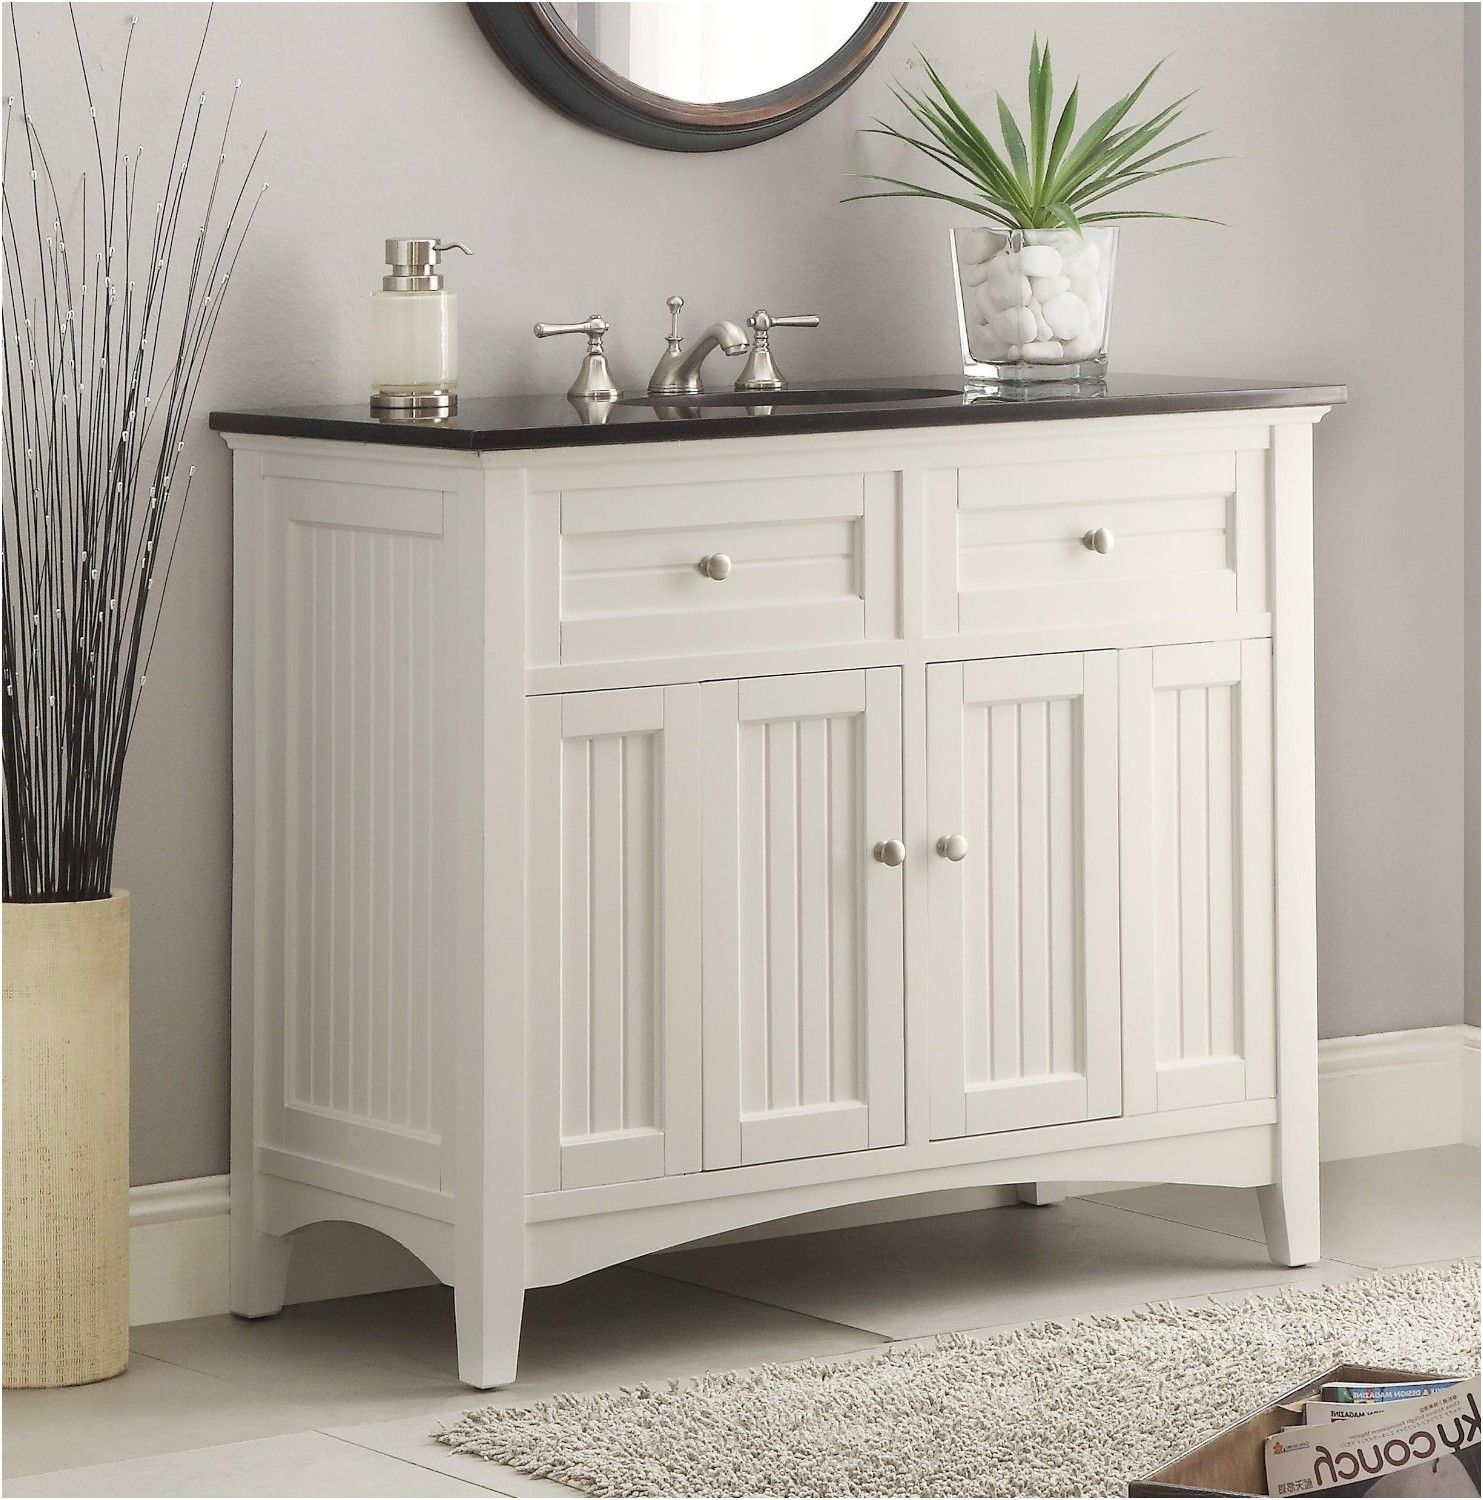 extraordinary antique white bathroom cabinets best antique white from Antique  White Bathroom Cabinets - Extraordinary Antique White Bathroom Cabinets Best Antique White